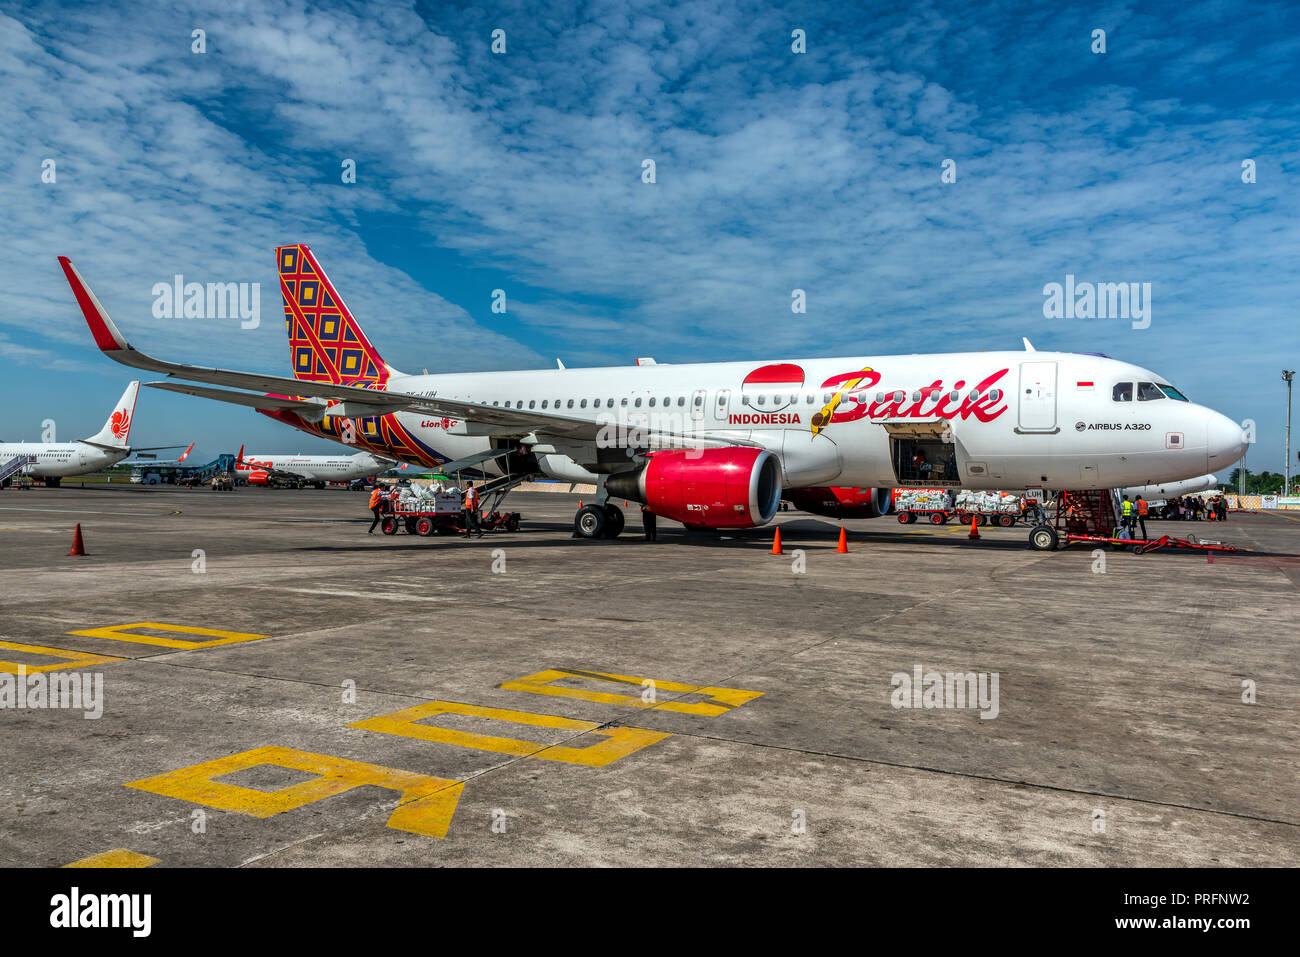 Batik Air Indonesia Airbus A320, Makassar airport, Sulawesi, Indonesia - Stock Image